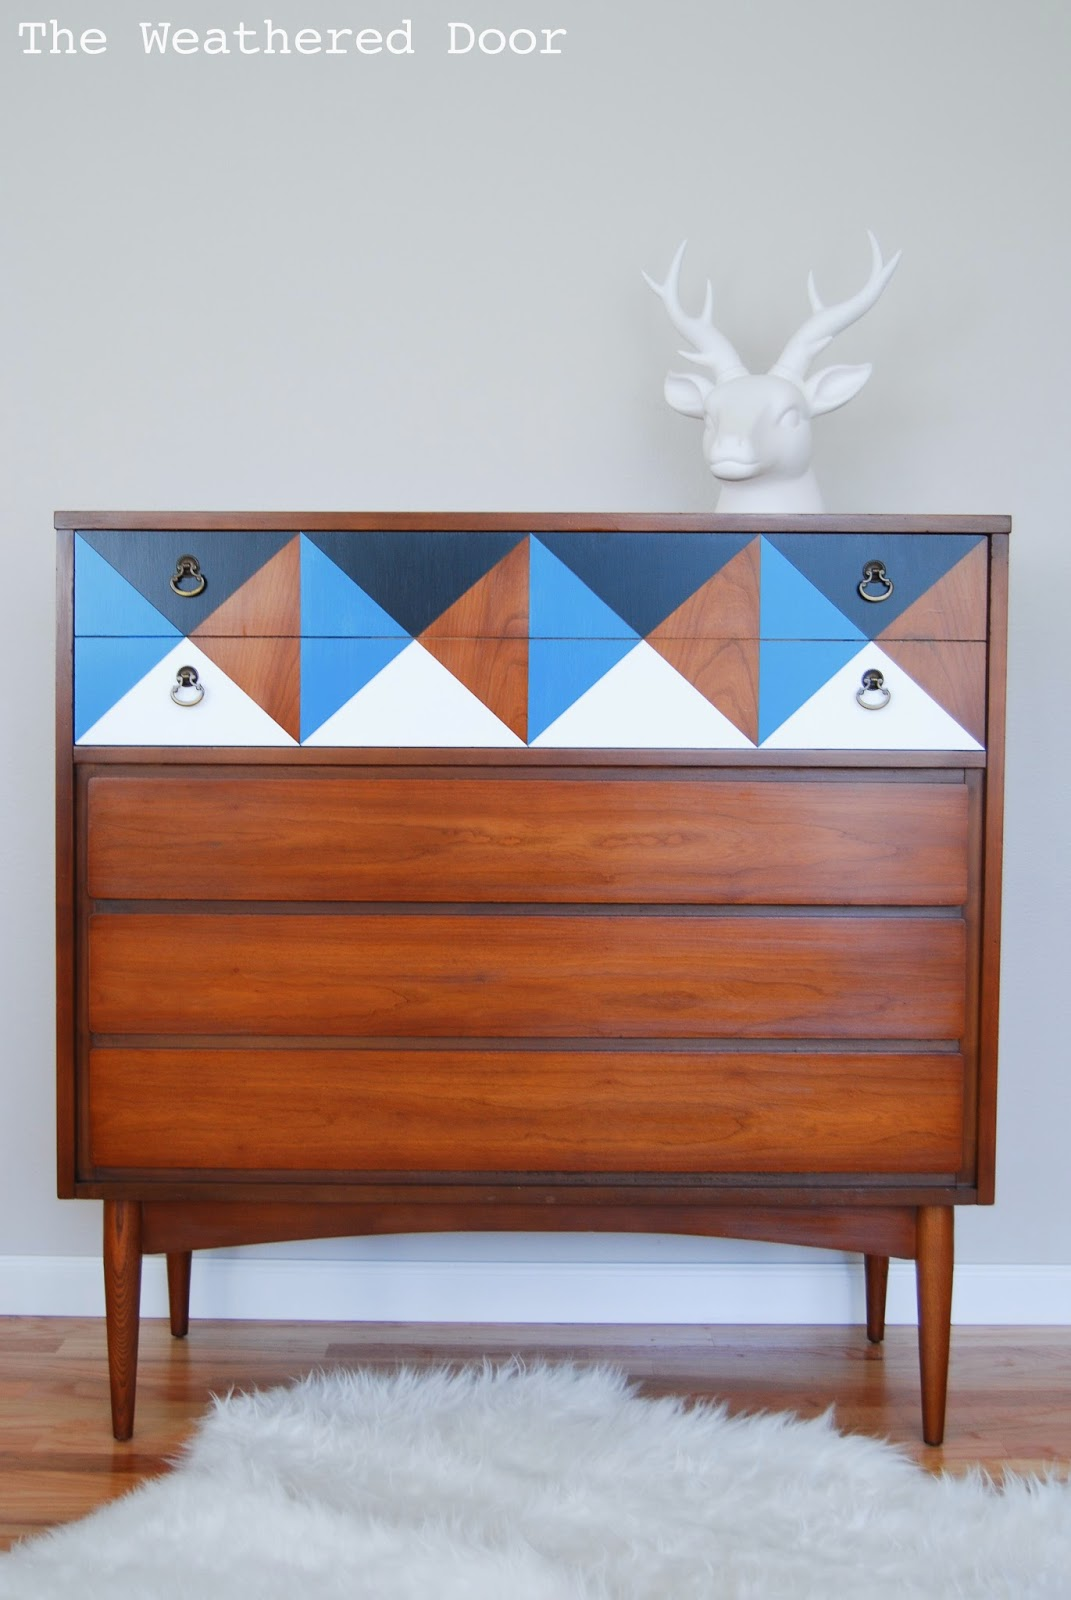 Diy modern vintage furniture makeover Pinterest Geometric Mid Century Dresser Wd1 Craftberry Bush The Inspiration Gallery Features